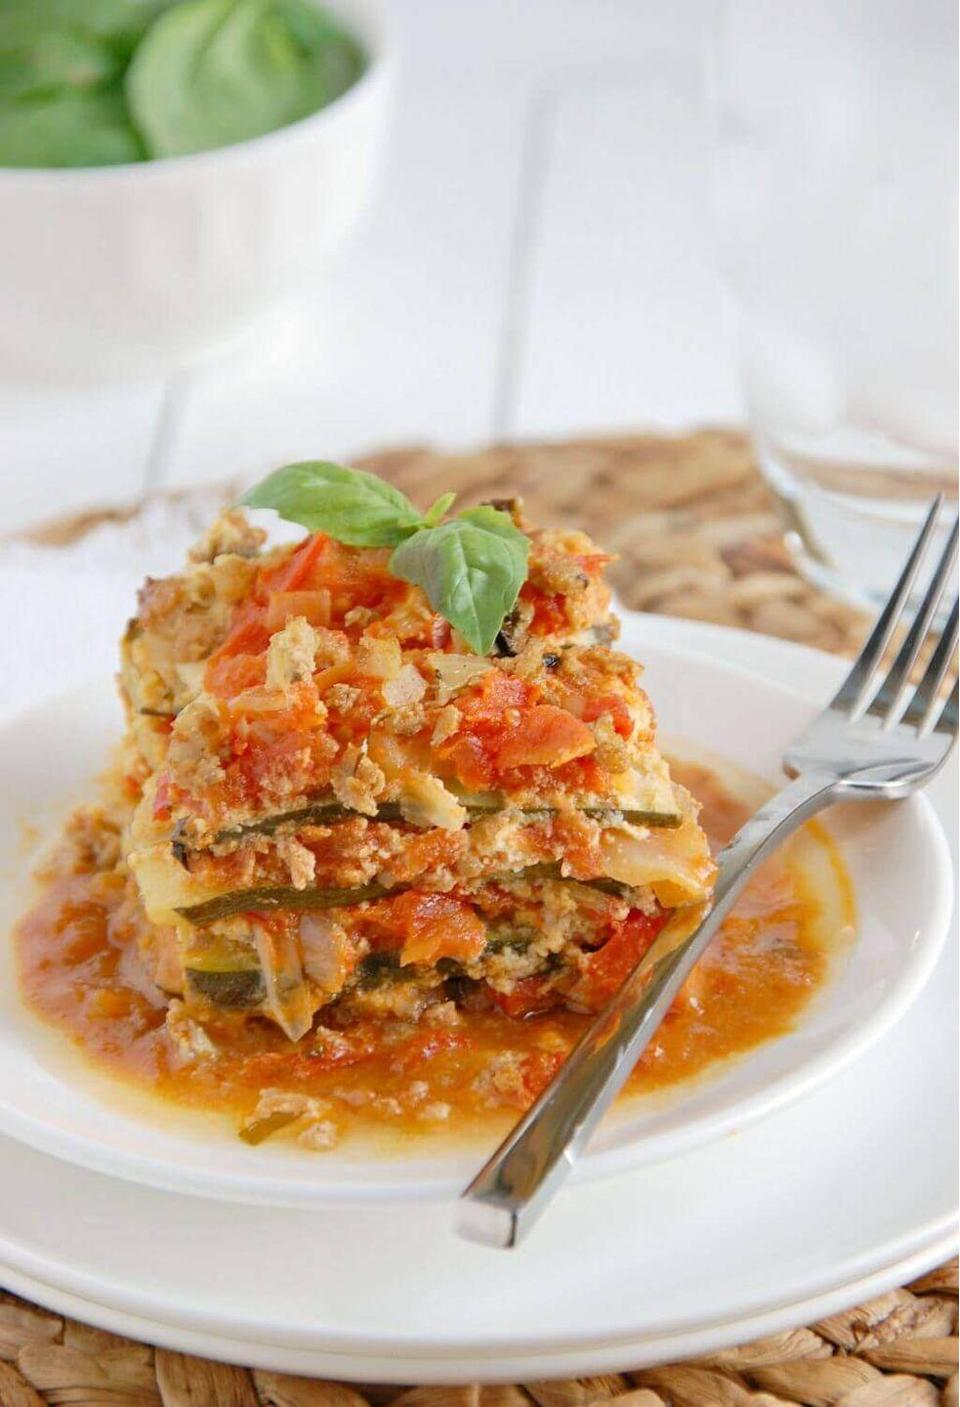 """<p>This ain't your grandma's lasagna.</p><p>Get the recipe from <a href=""""https://www.mynaturalfamily.com/recipes/paleo-recipes/paleo-crock-pot-lasagna-recipe/"""" rel=""""nofollow noopener"""" target=""""_blank"""" data-ylk=""""slk:My Natural Family"""" class=""""link rapid-noclick-resp"""">My Natural Family</a>.</p>"""